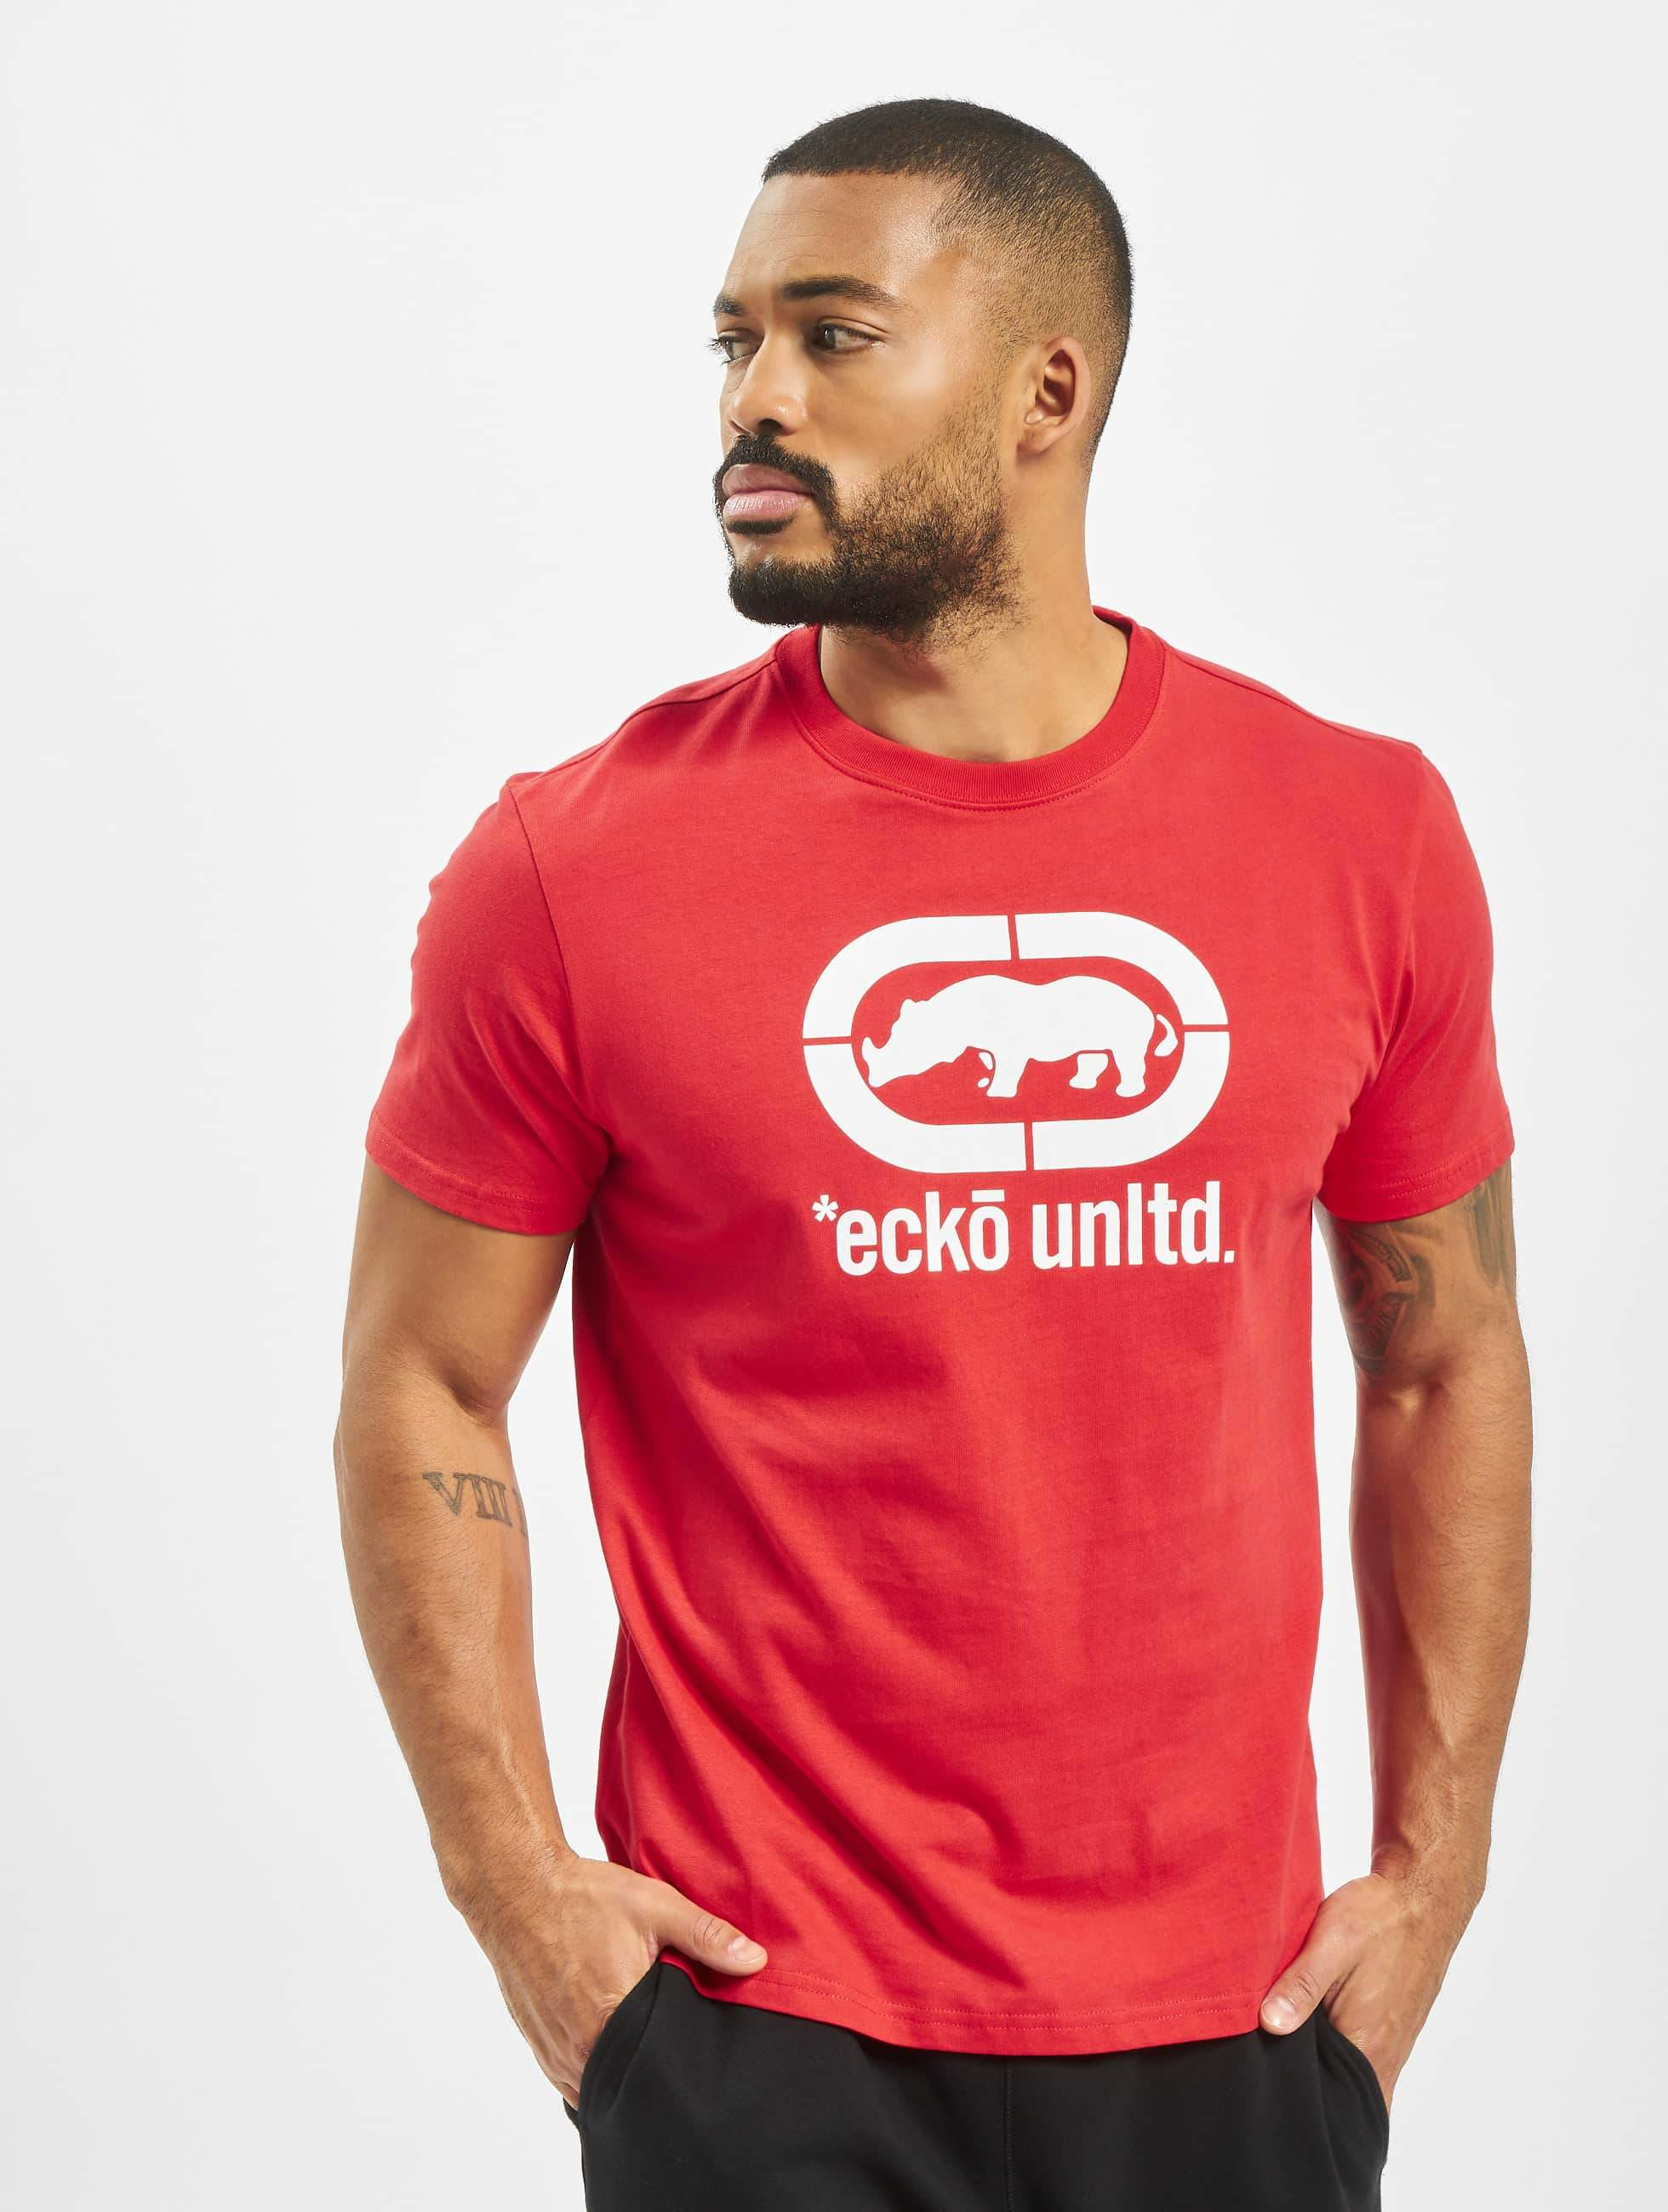 Ecko Unltd. / T-Shirt John Rhino in red L